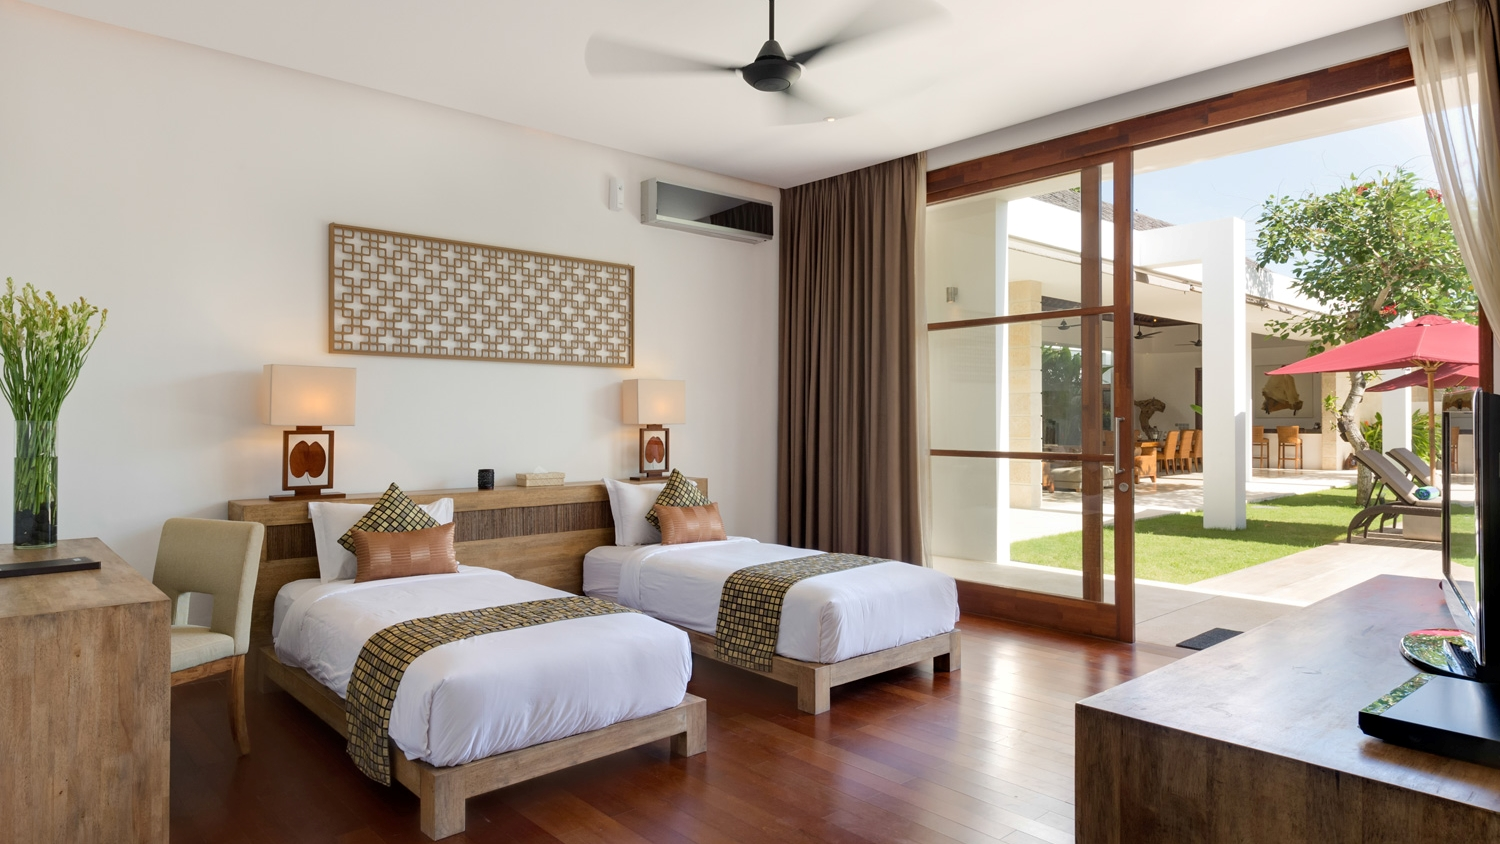 Twin Bedroom with View - Casa Brio - Seminyak, Bali